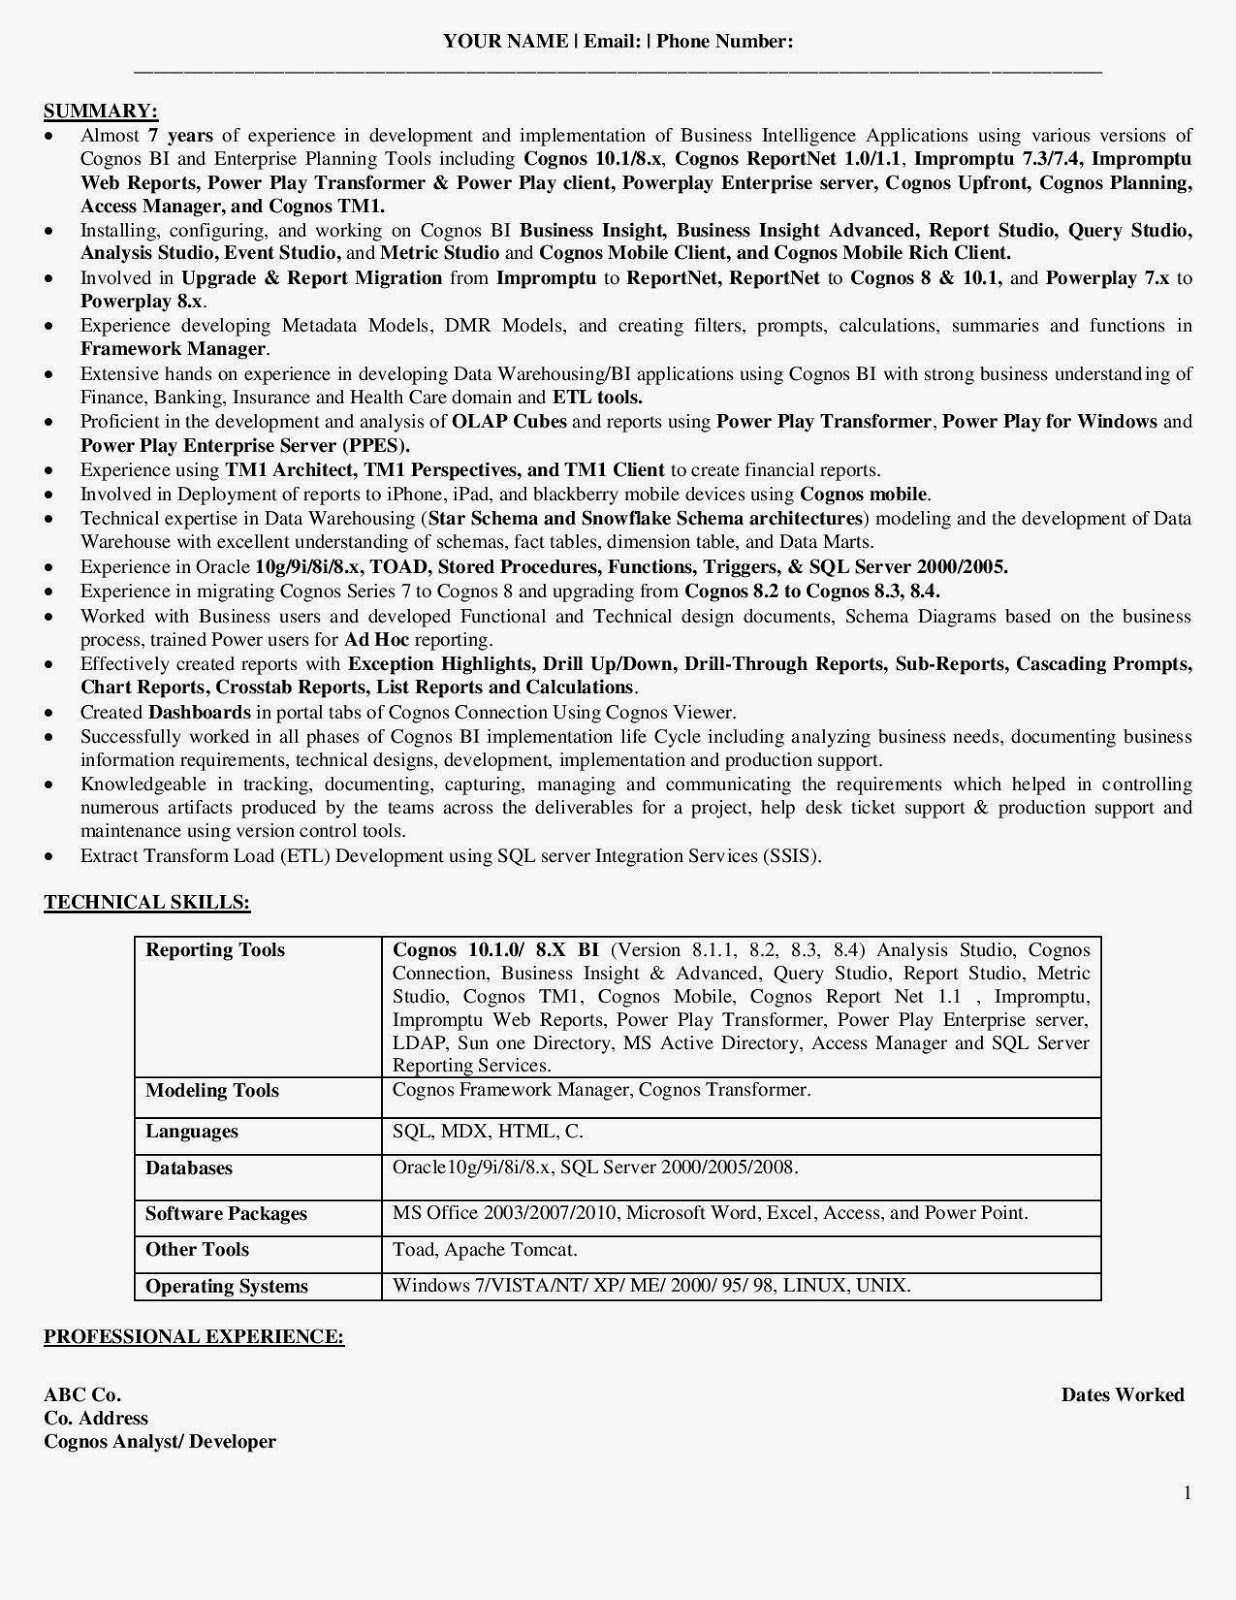 sample resume for oracle pl sql - Oracle Dba Resume Examples